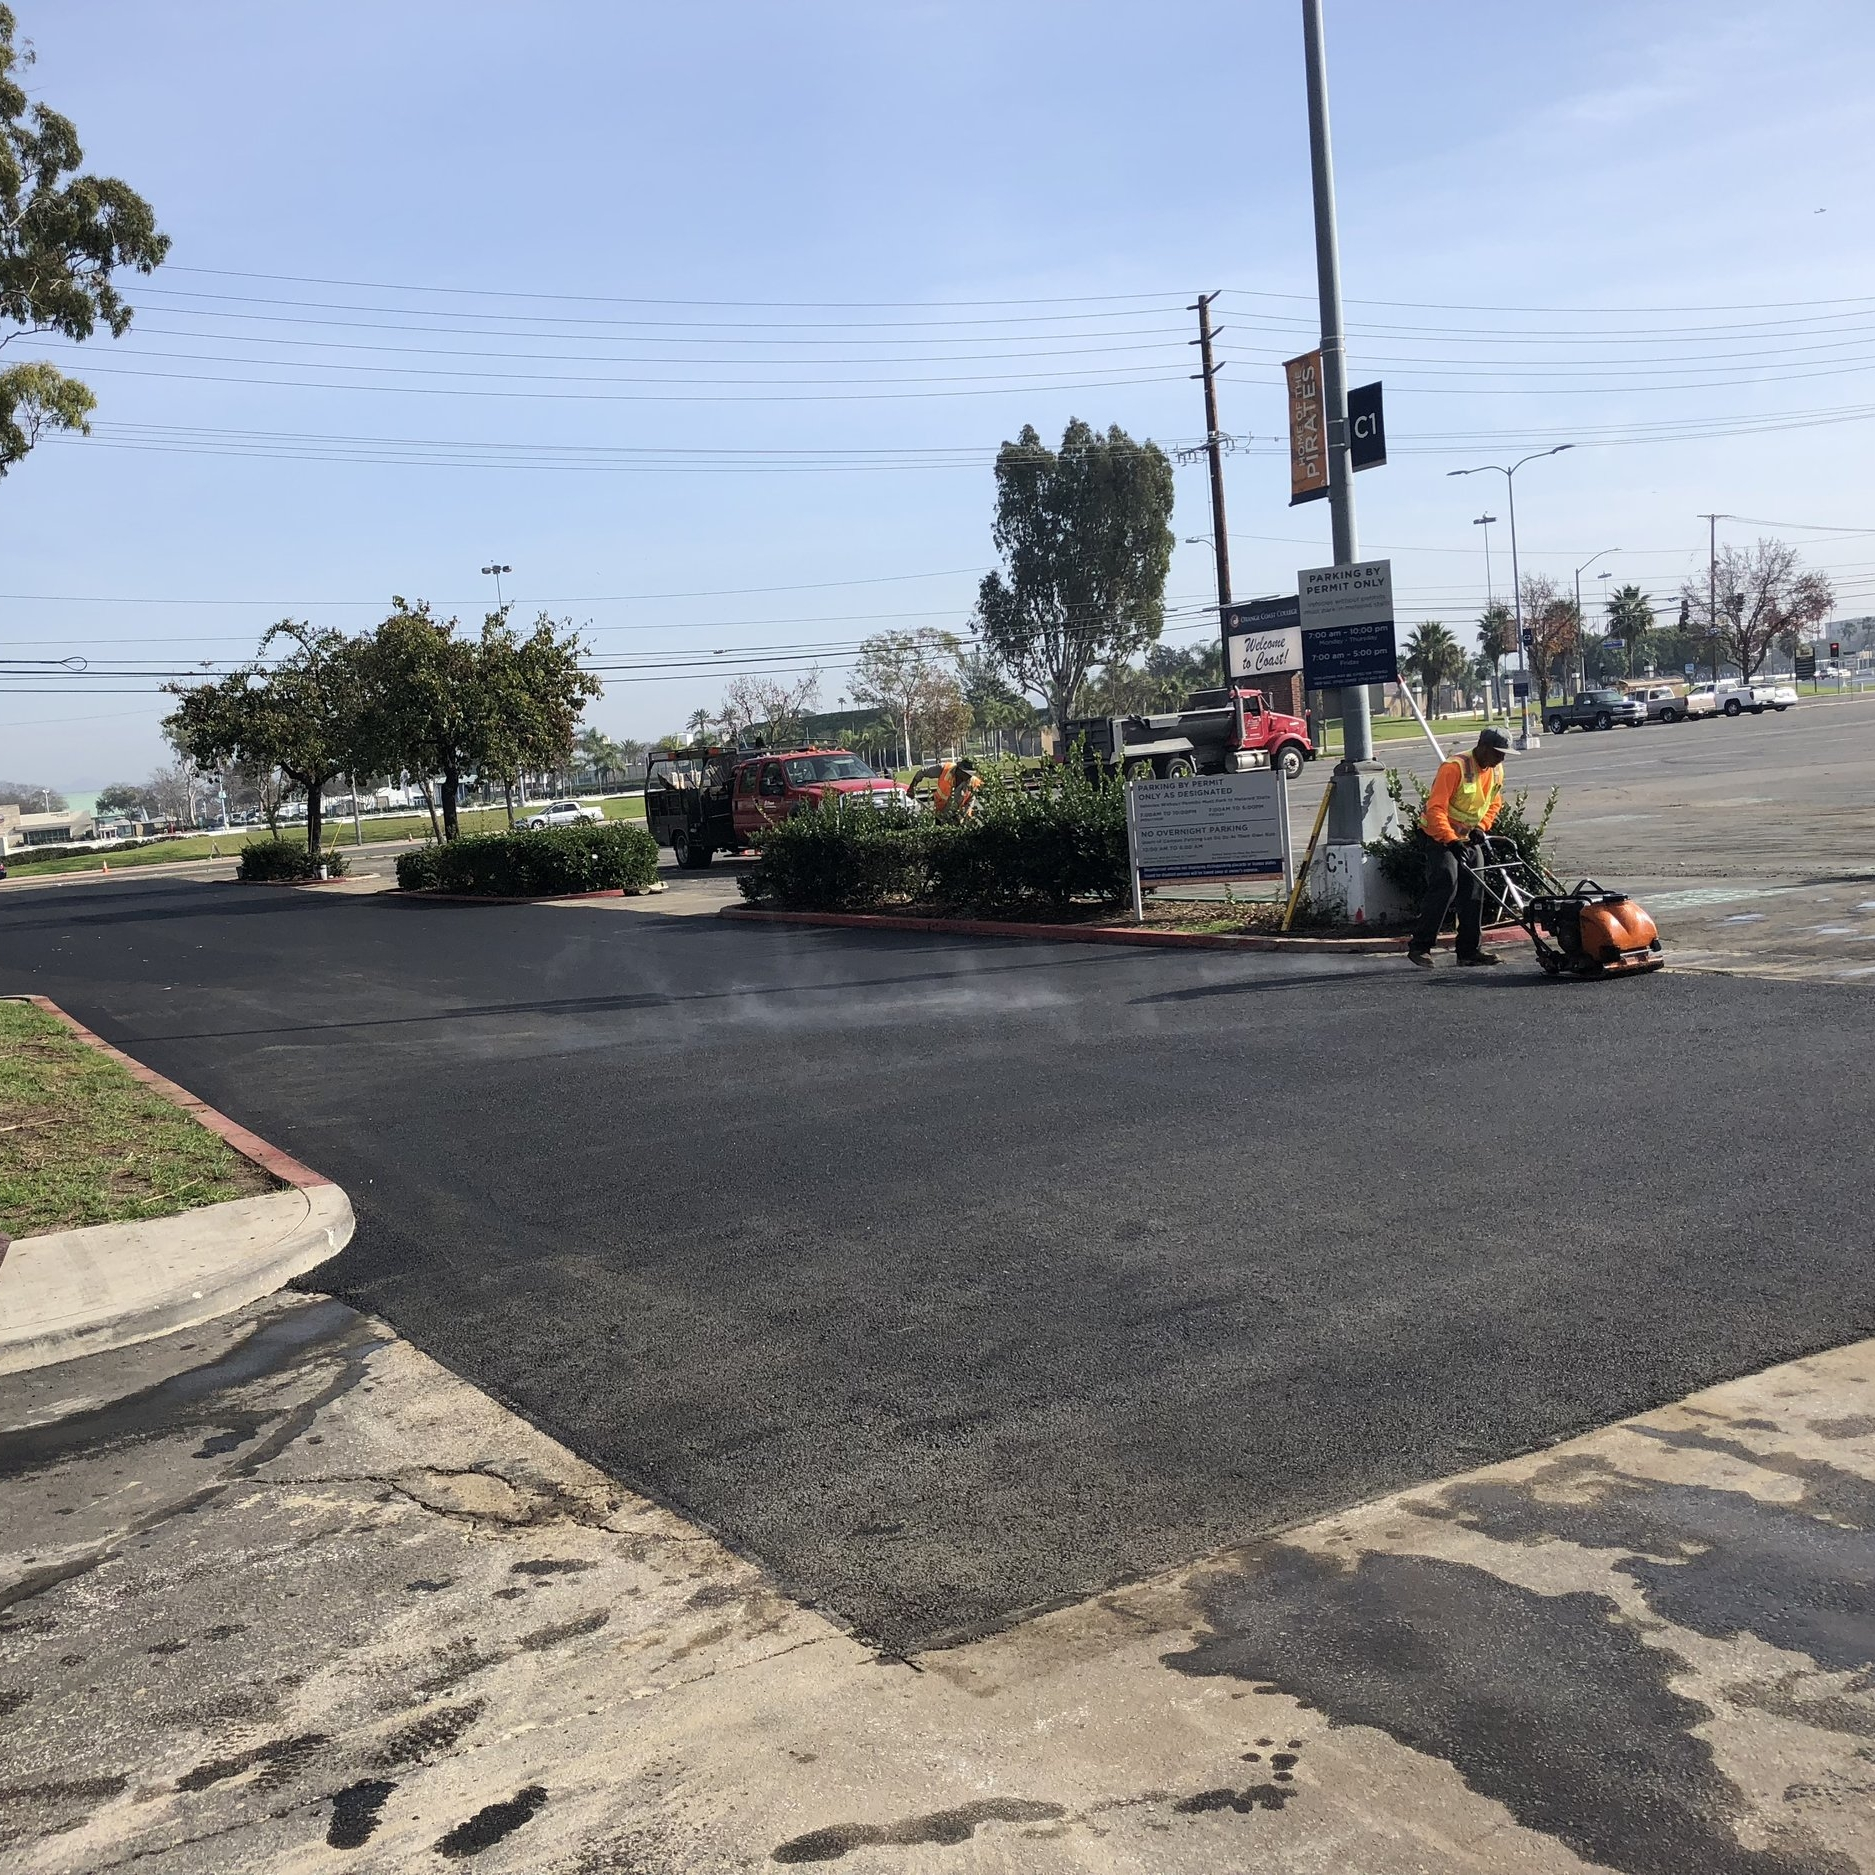 ASPHALT REPAIR - When uneven surfaces, pot holes or open cracks appear in your asphalt, paved area repairs become necessary.